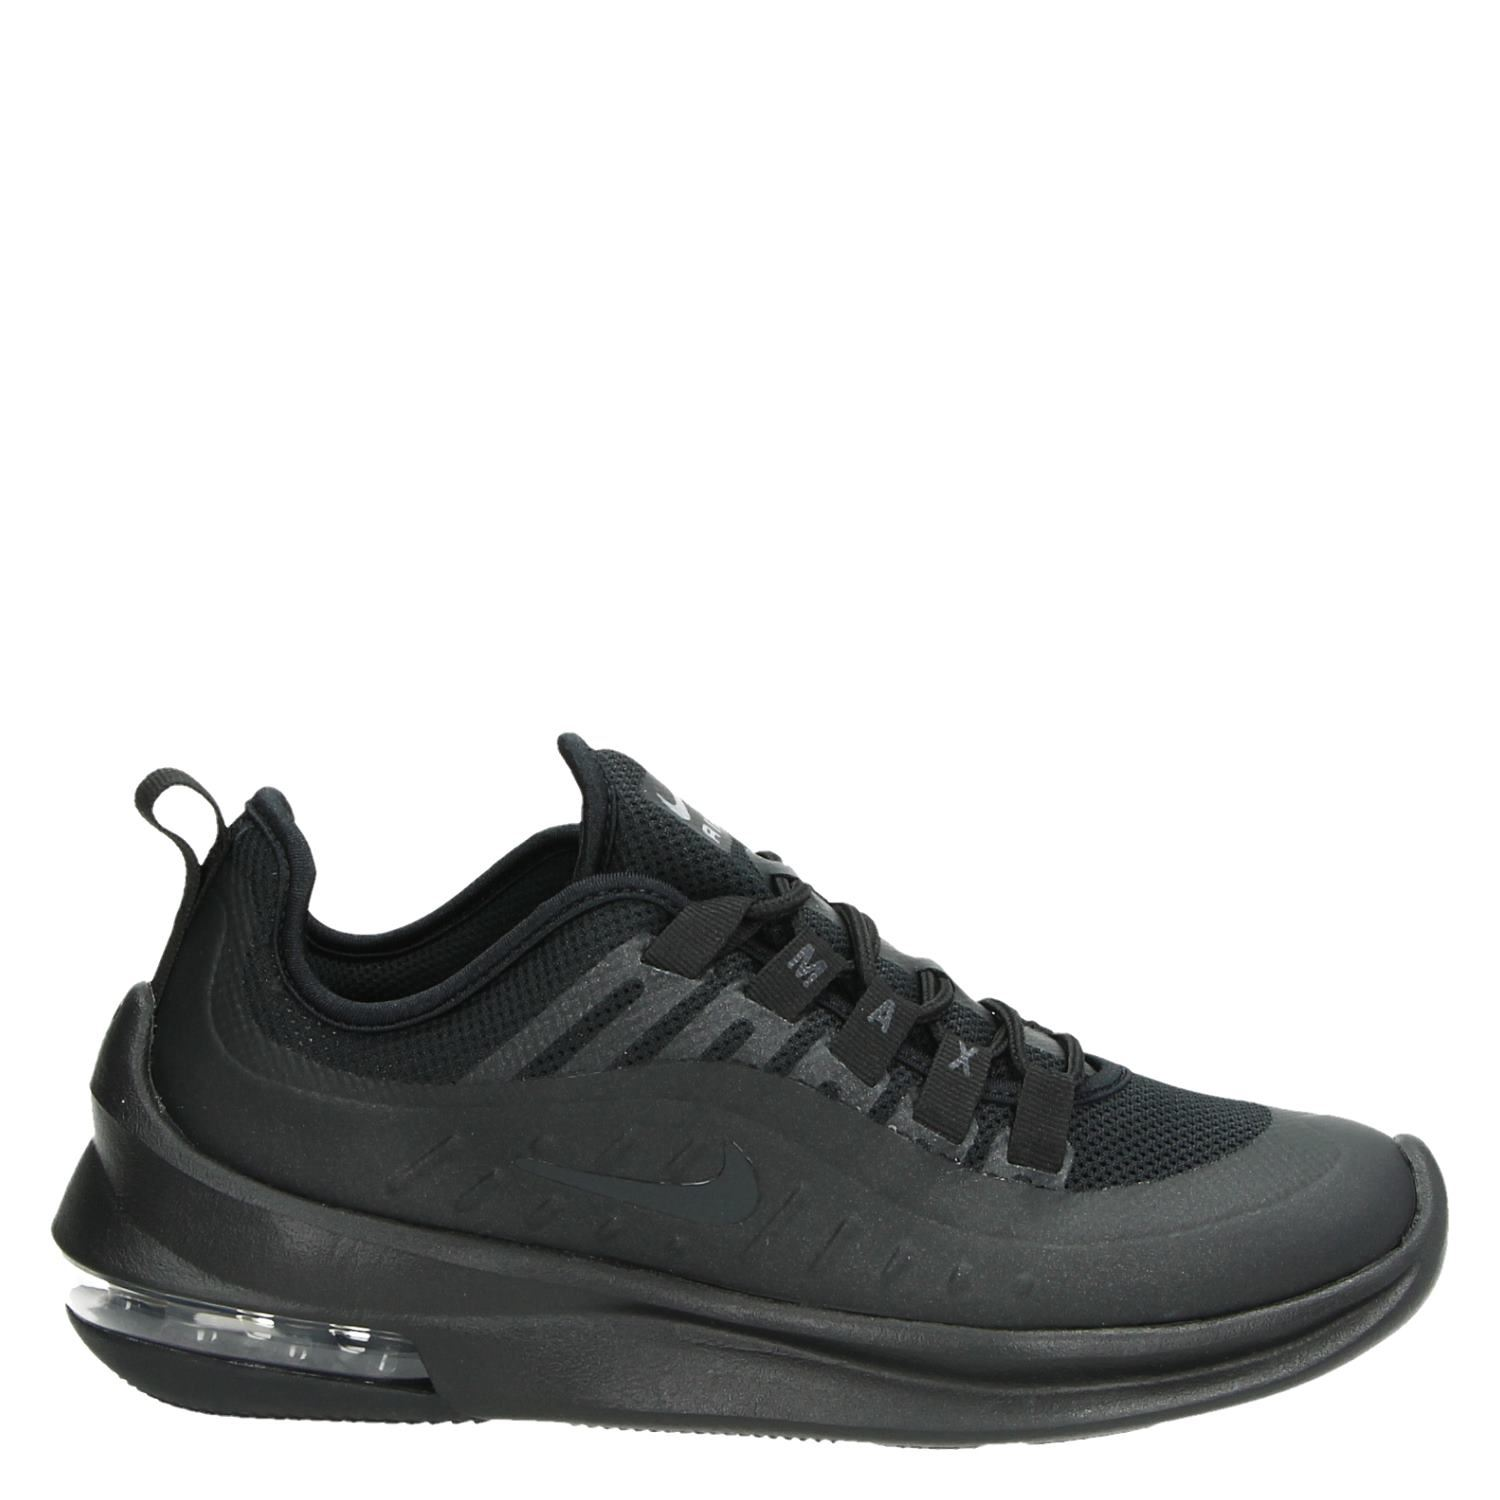 best service 9fc37 8d9a5 Nike Air Max Axis dames lage sneakers